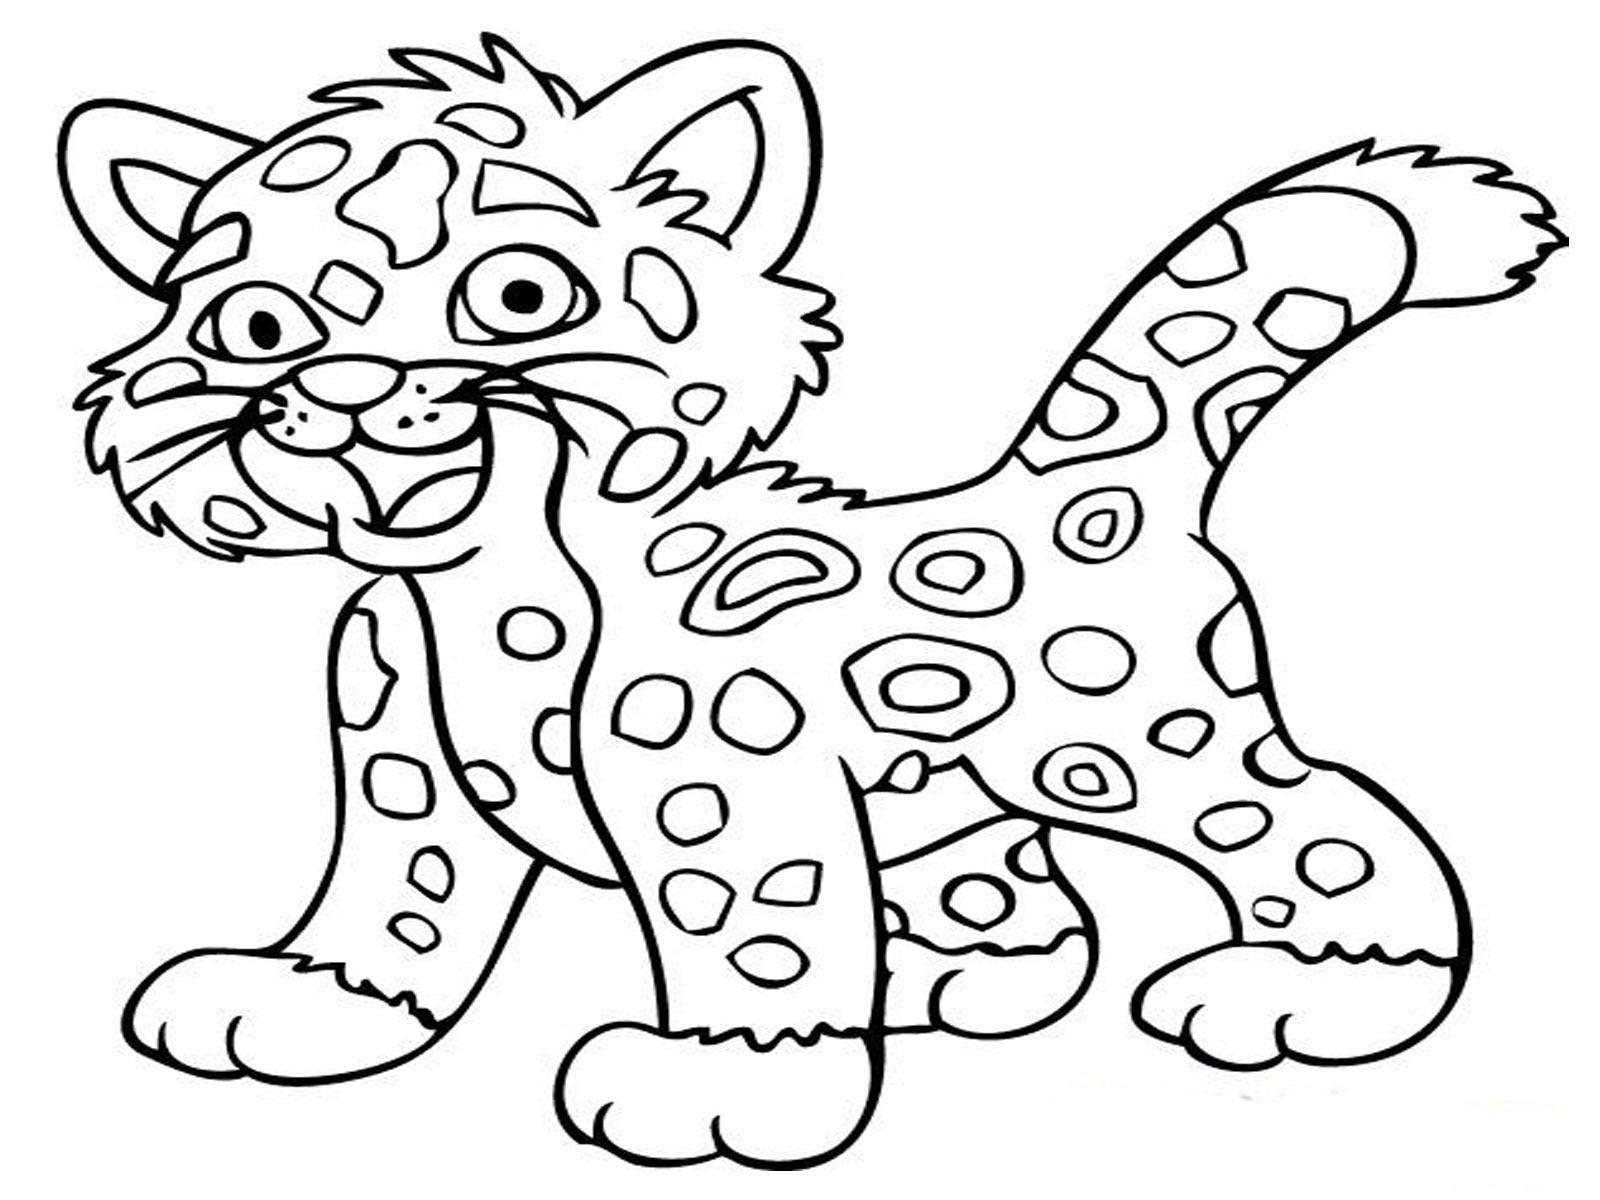 coloringpages of animals | Jaguar Animal Coloring Pages | Realistic ...